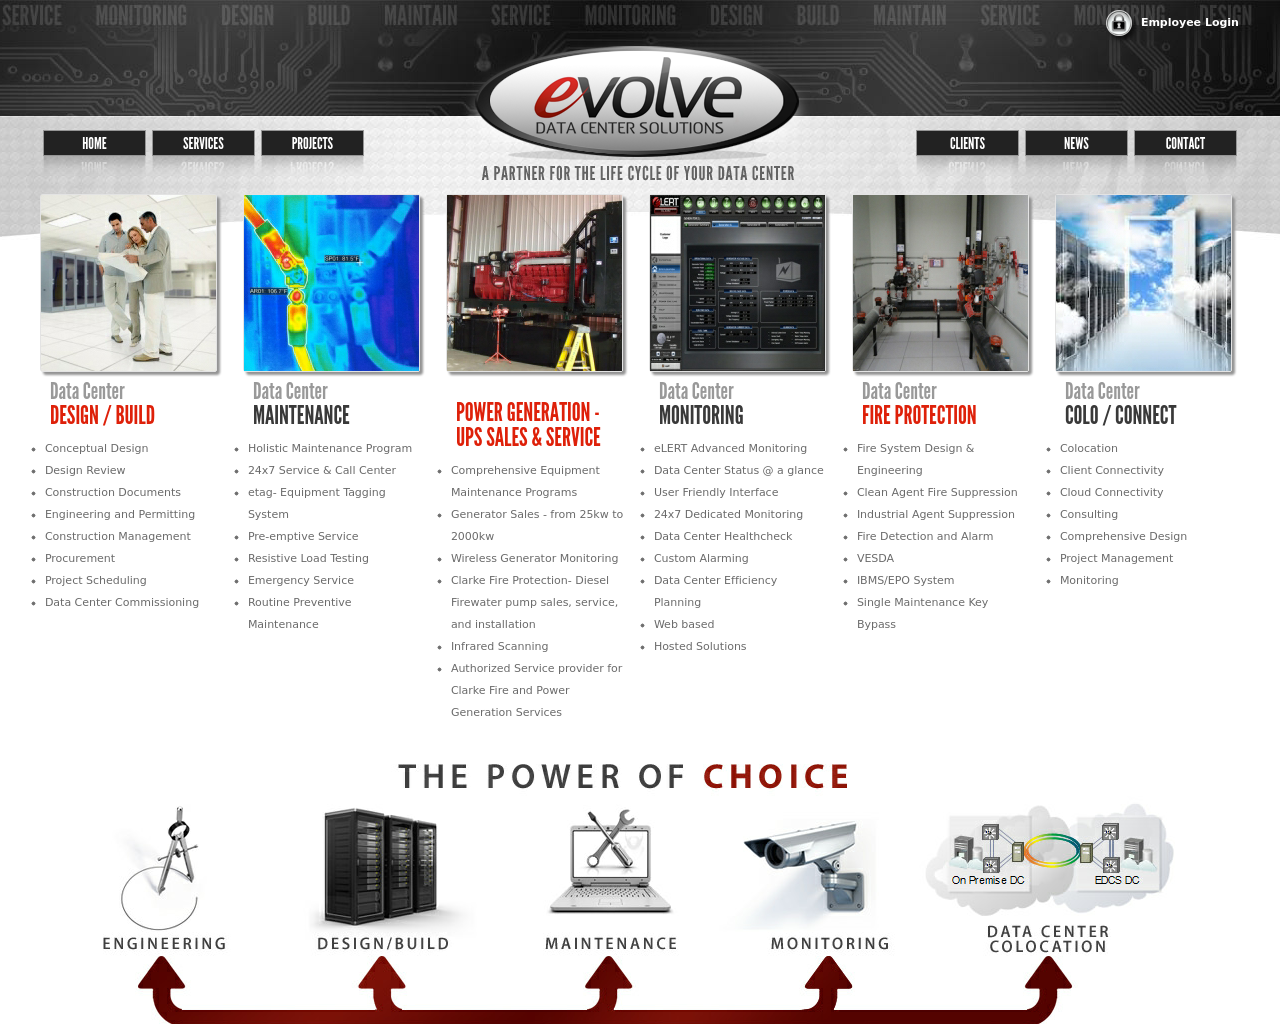 Evolve-Data-Center-Solutions-Advertising-Reviews-Pricing